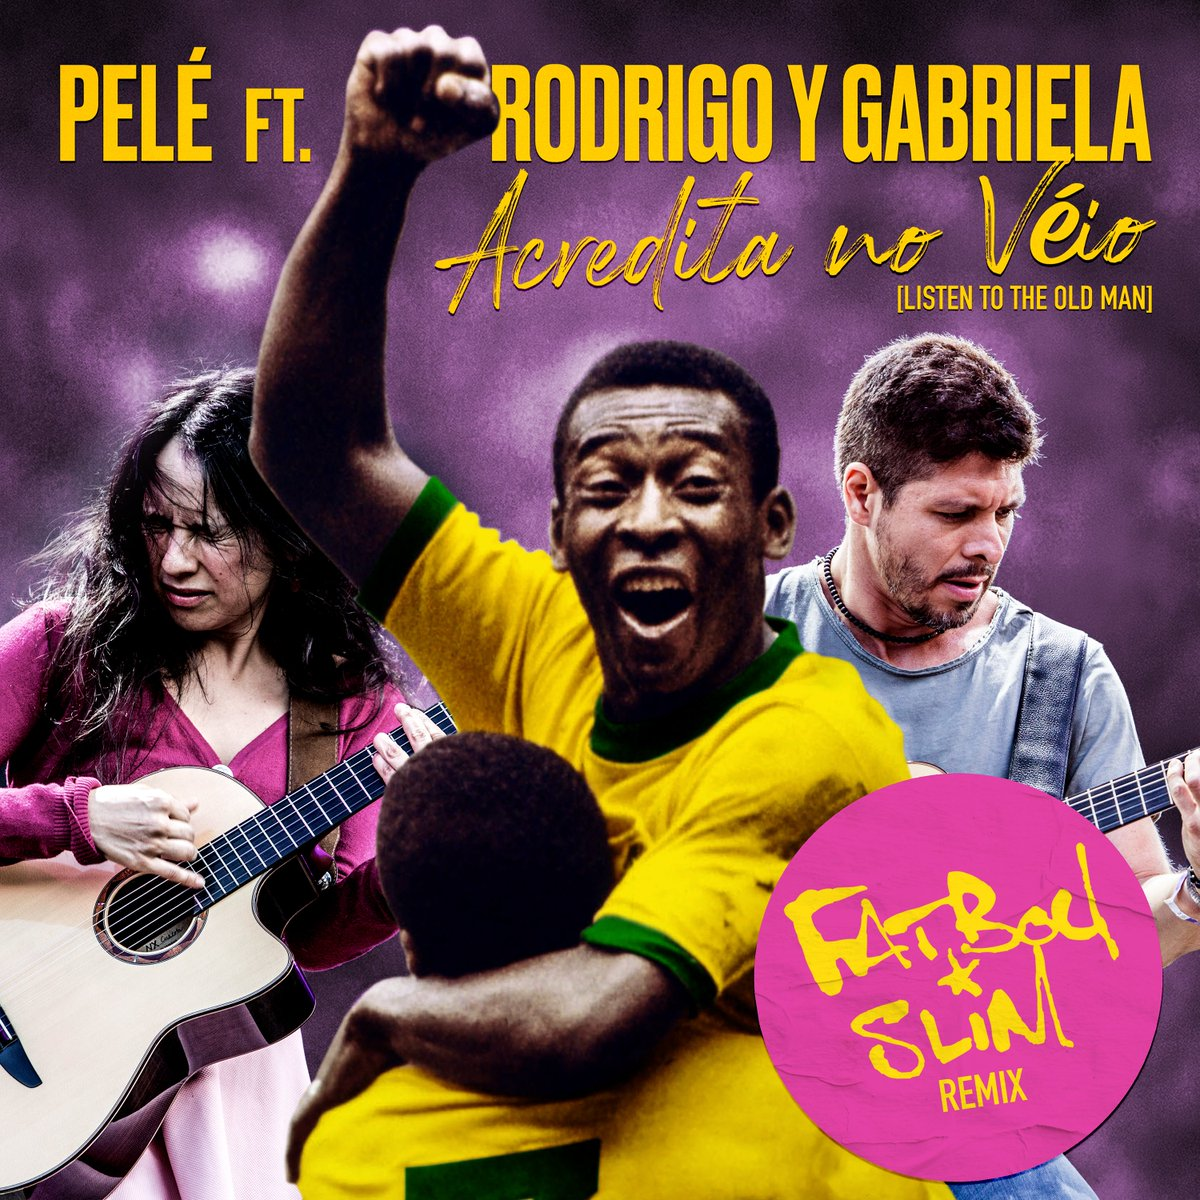 🆕 on @SportPlaylists!  @Pele's 'Acredita No Véio (feat. @rodgab)' has been given the remix treatment by the one and only @FatboySlim 🎧  #Pelé #FatboySlim #Pele80 #Music #NewMusicFriday @Rubyworks @ShootMusic 🇧🇷